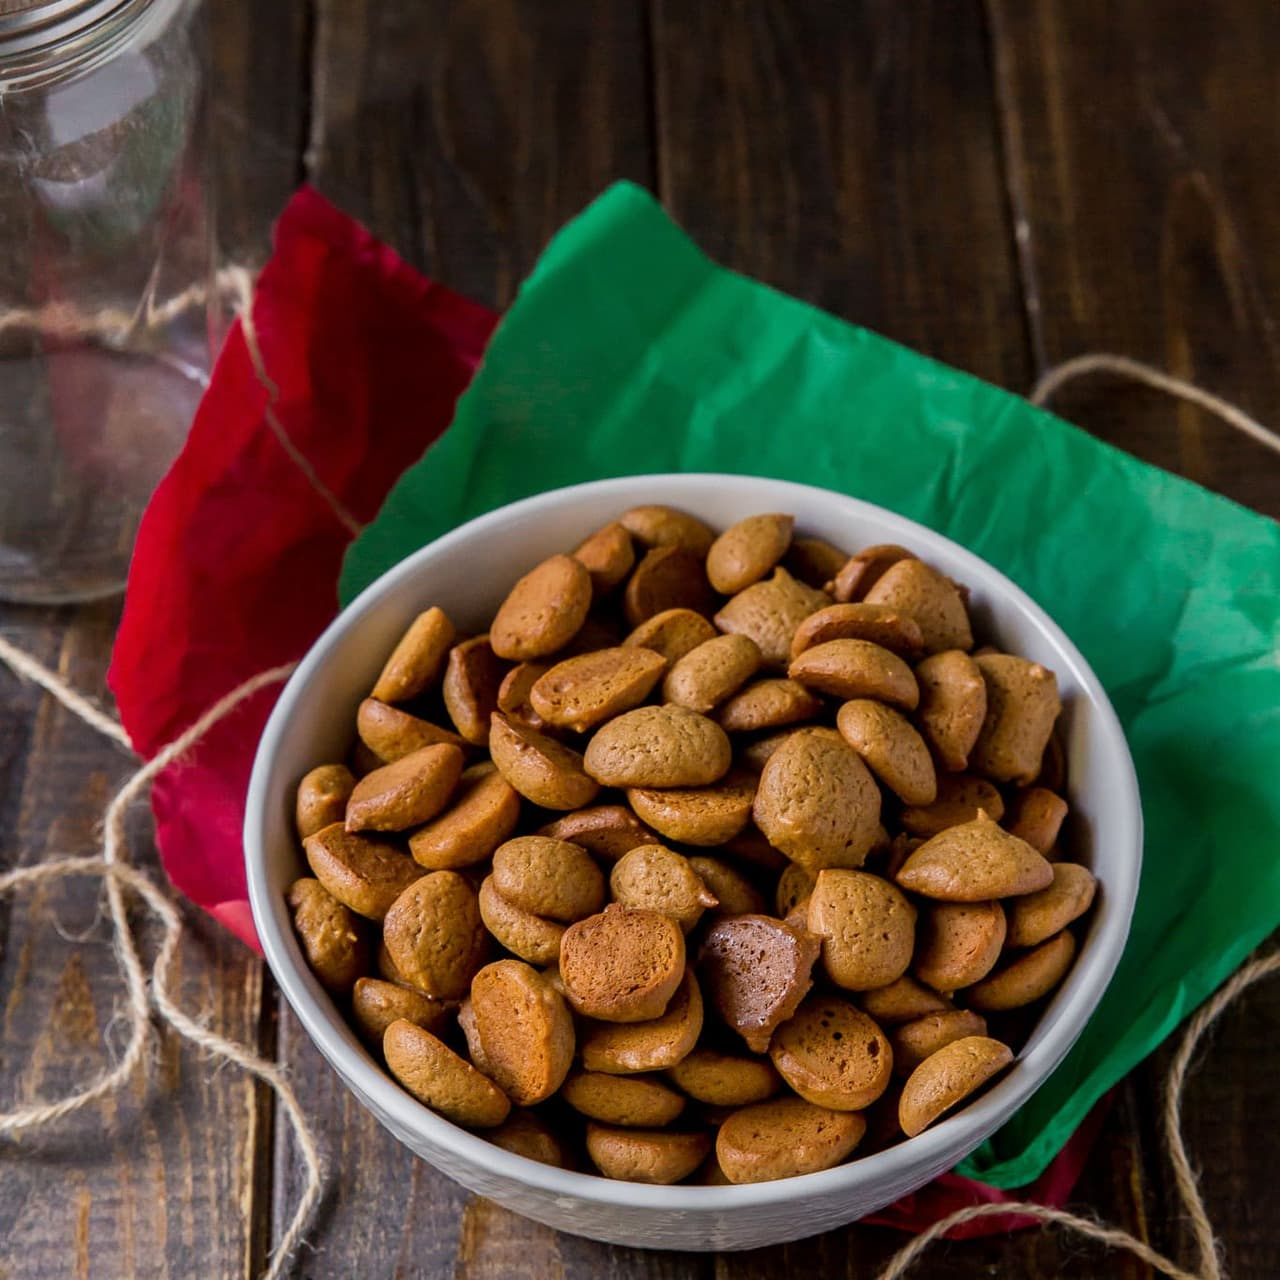 This Peppernuts recipe makes traditional German cookies (Pfeffernüsse Cookies) that are small, crunchy, slightly sweet and addictive cookies!